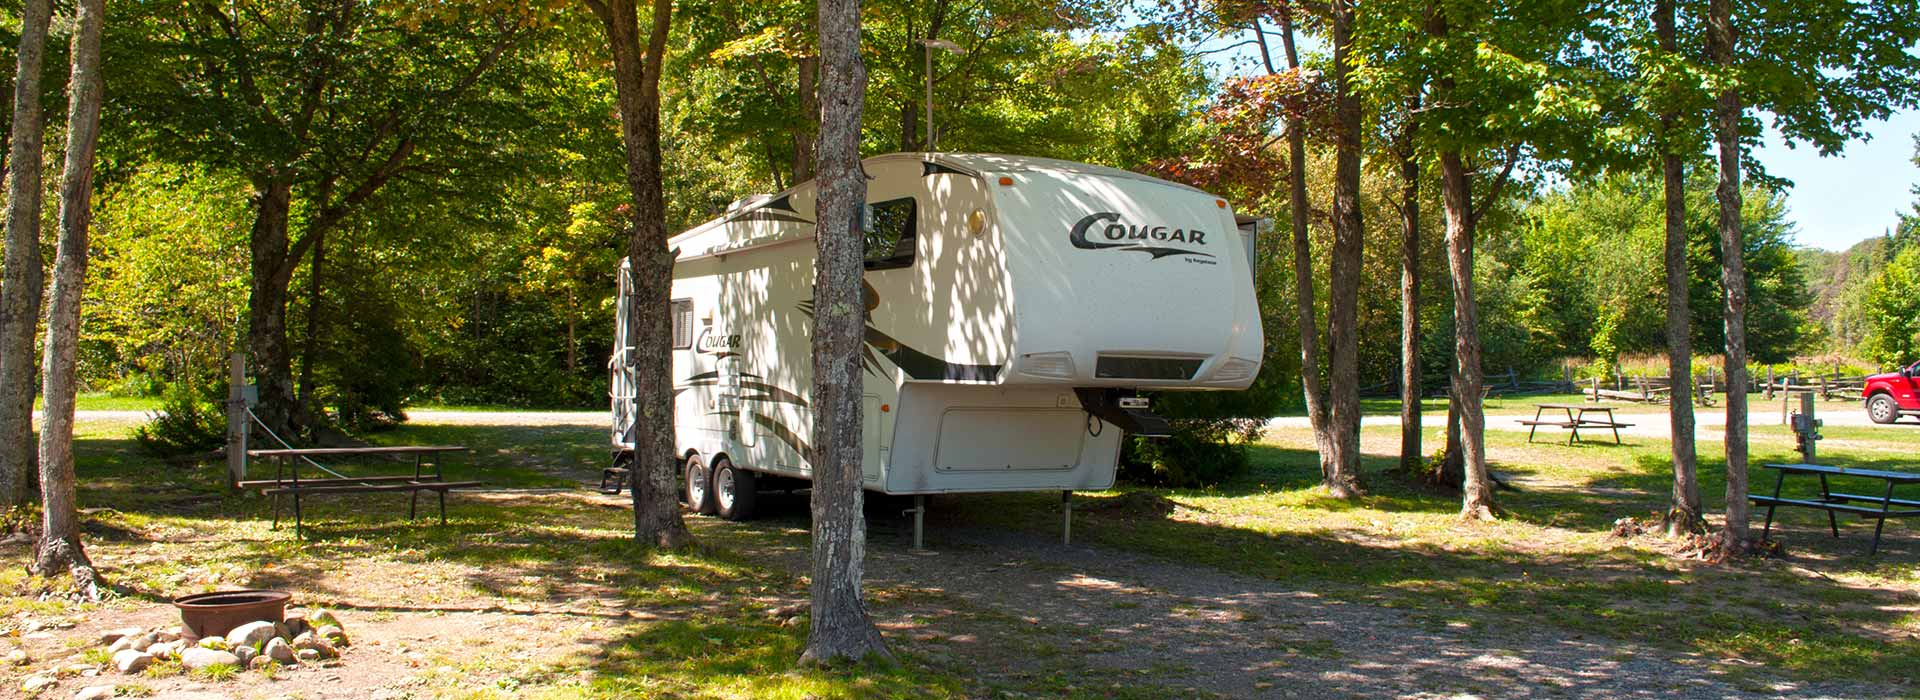 campground-rvs